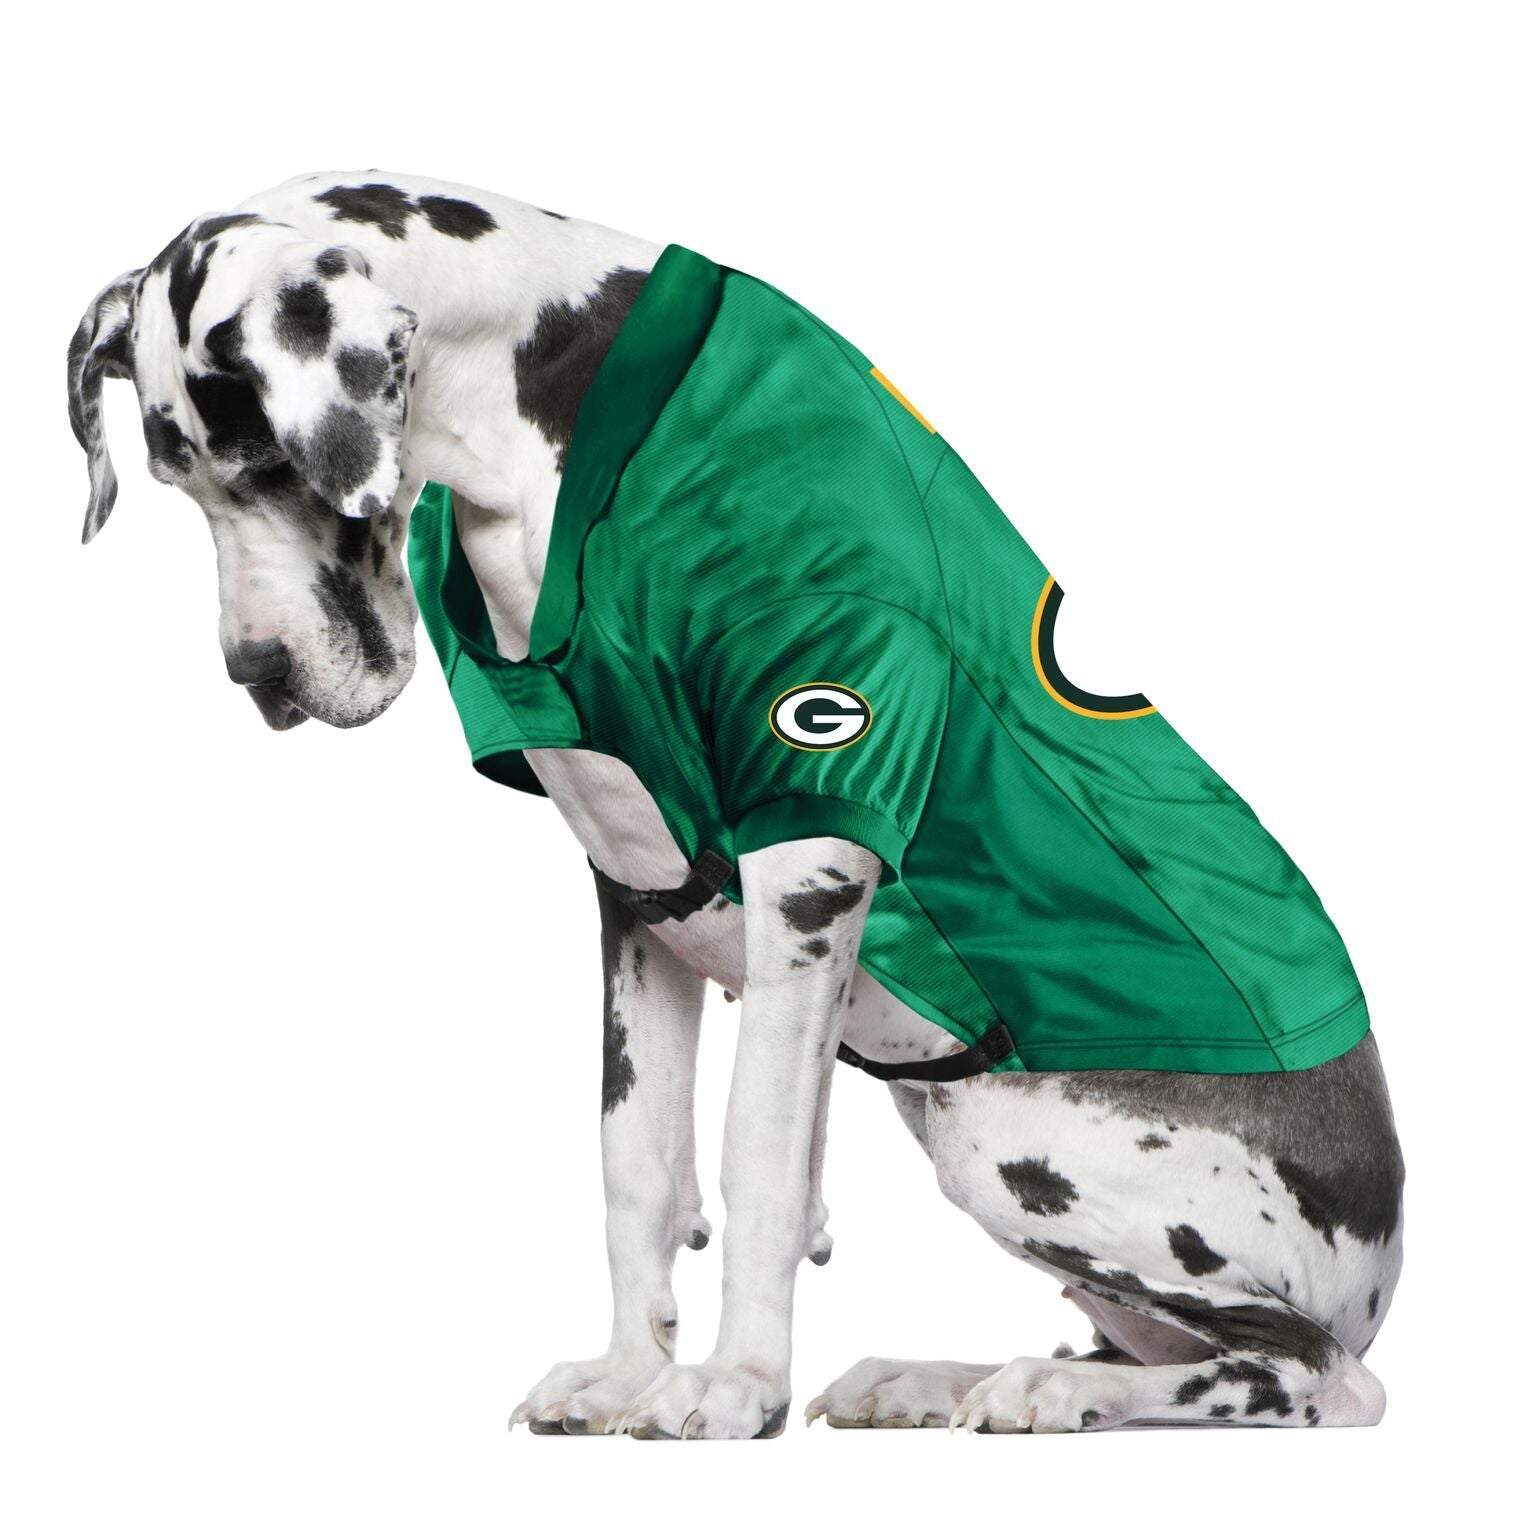 Packers fan jersey for your dog